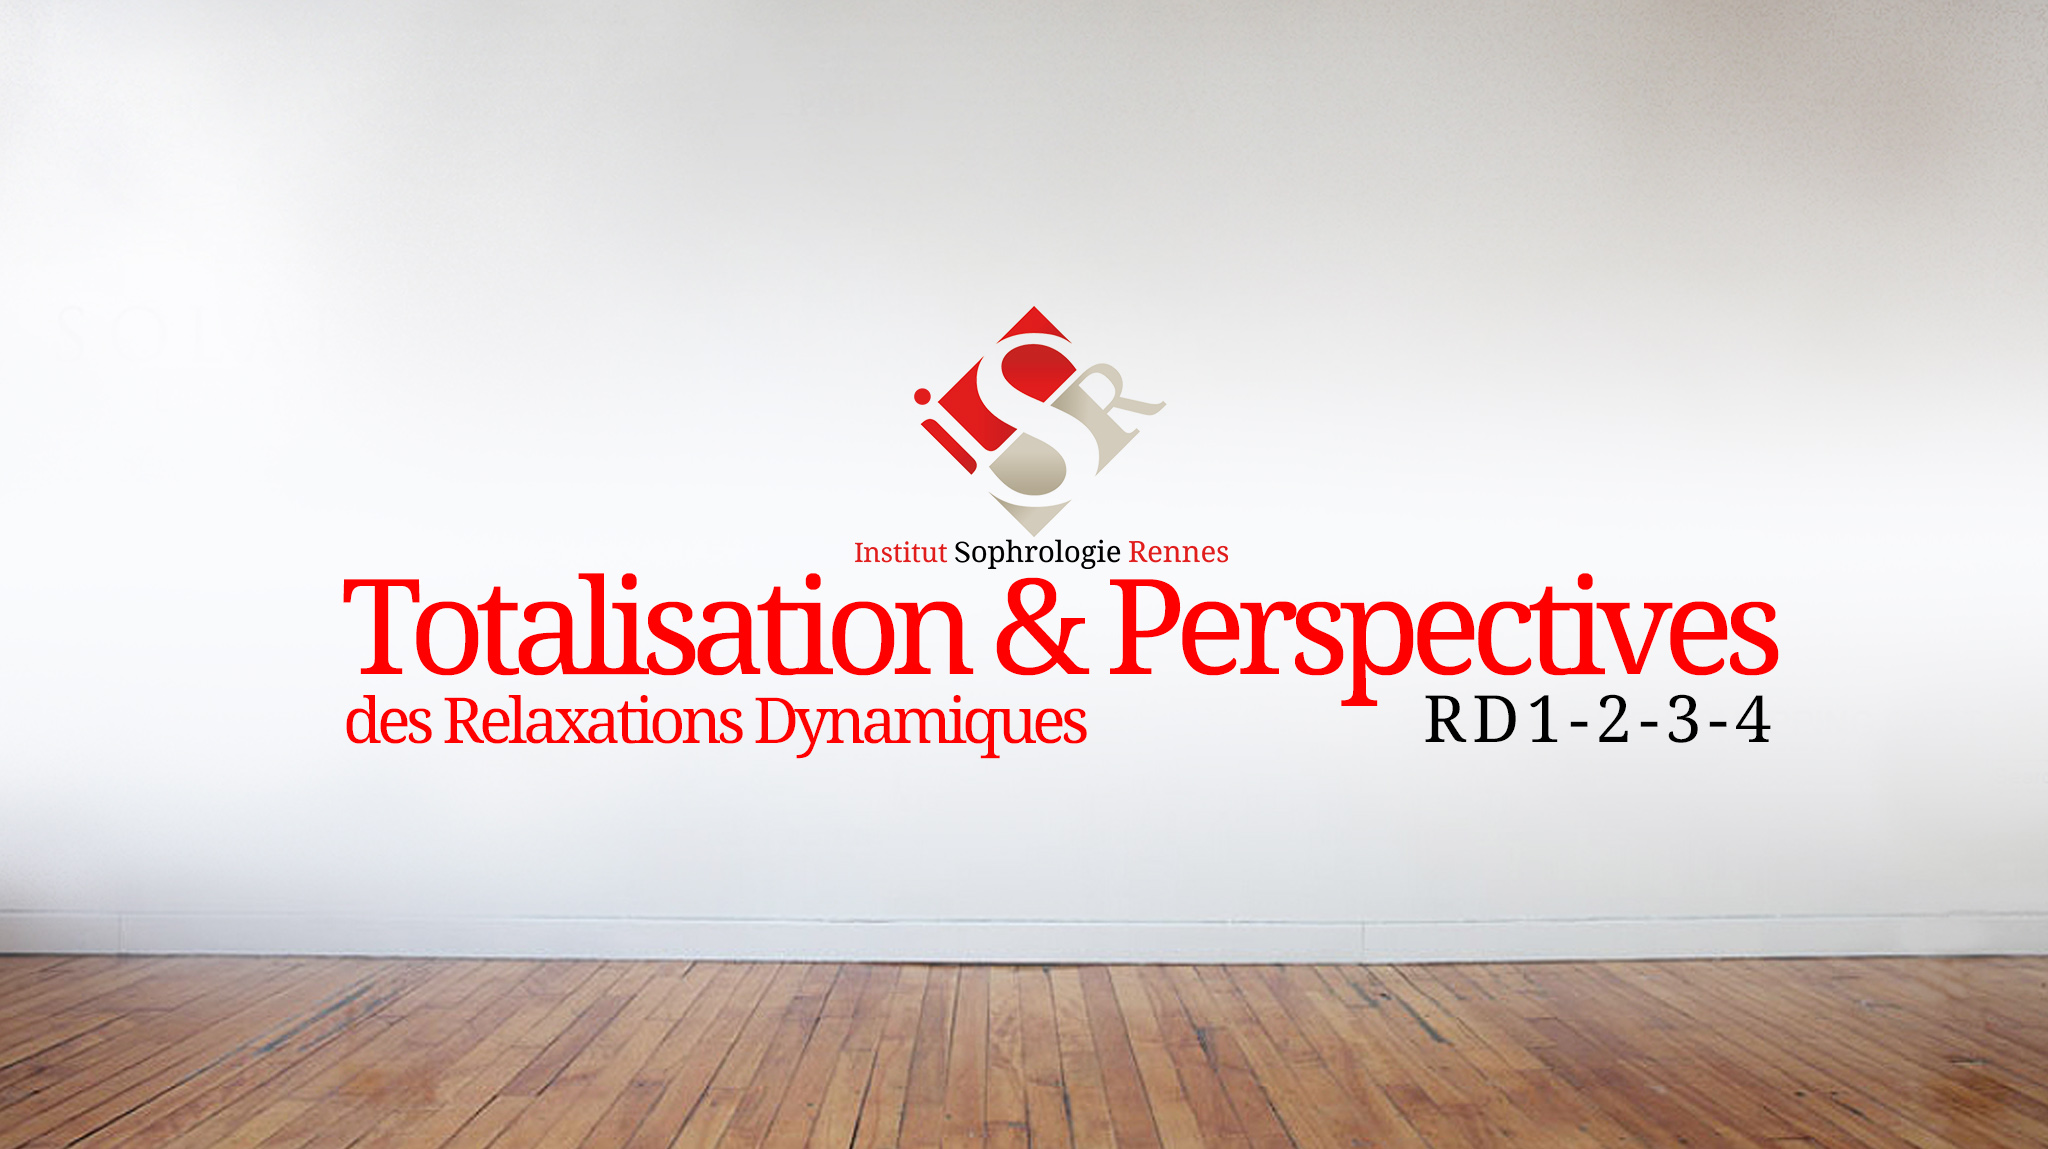 totalisation & Perspectives